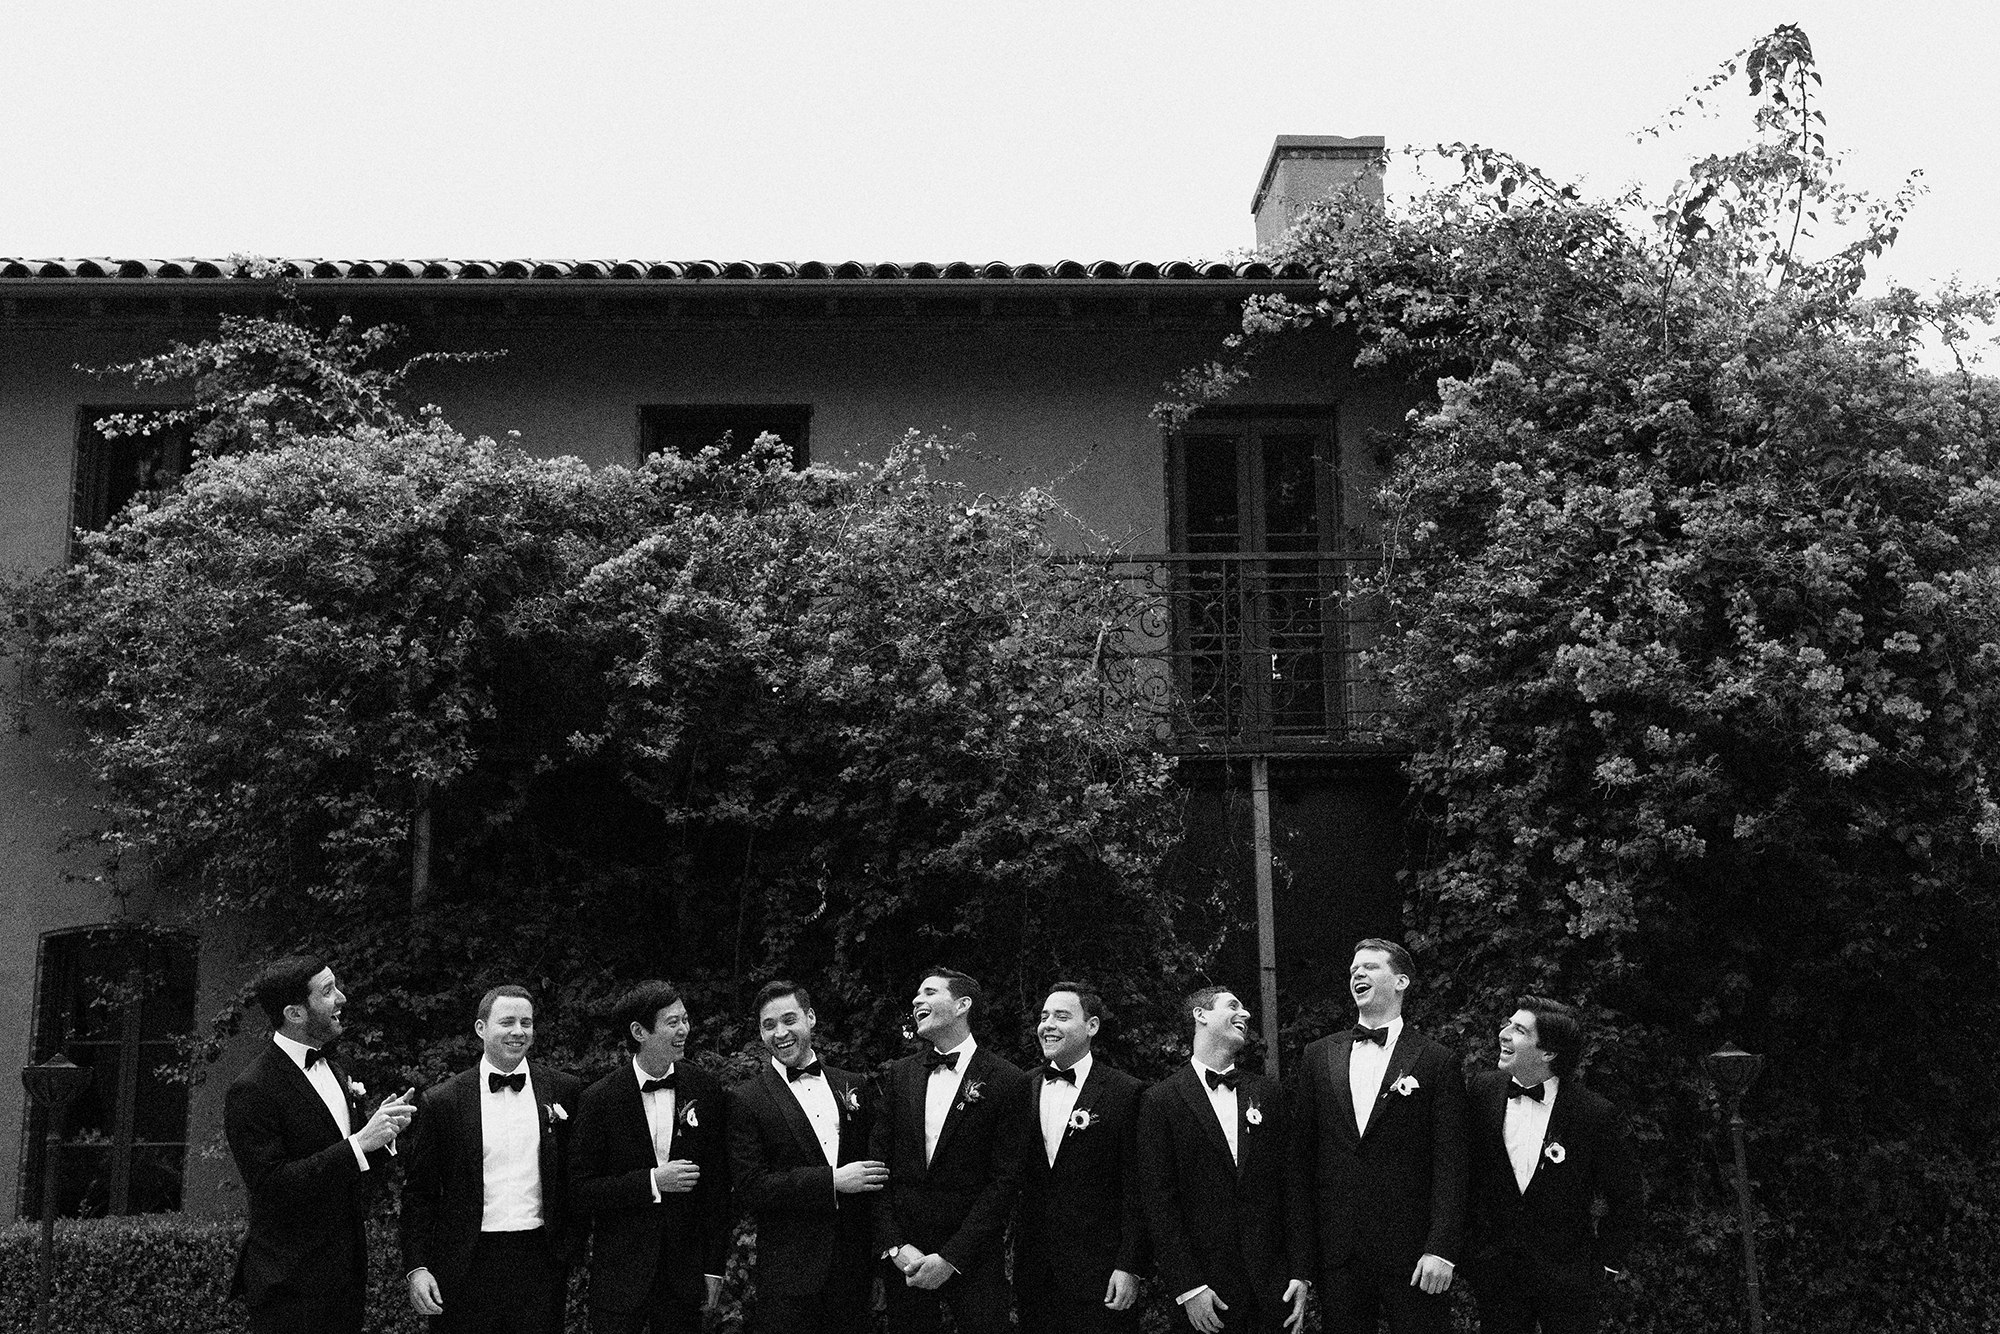 Los Angeles wedding at the paramour estate